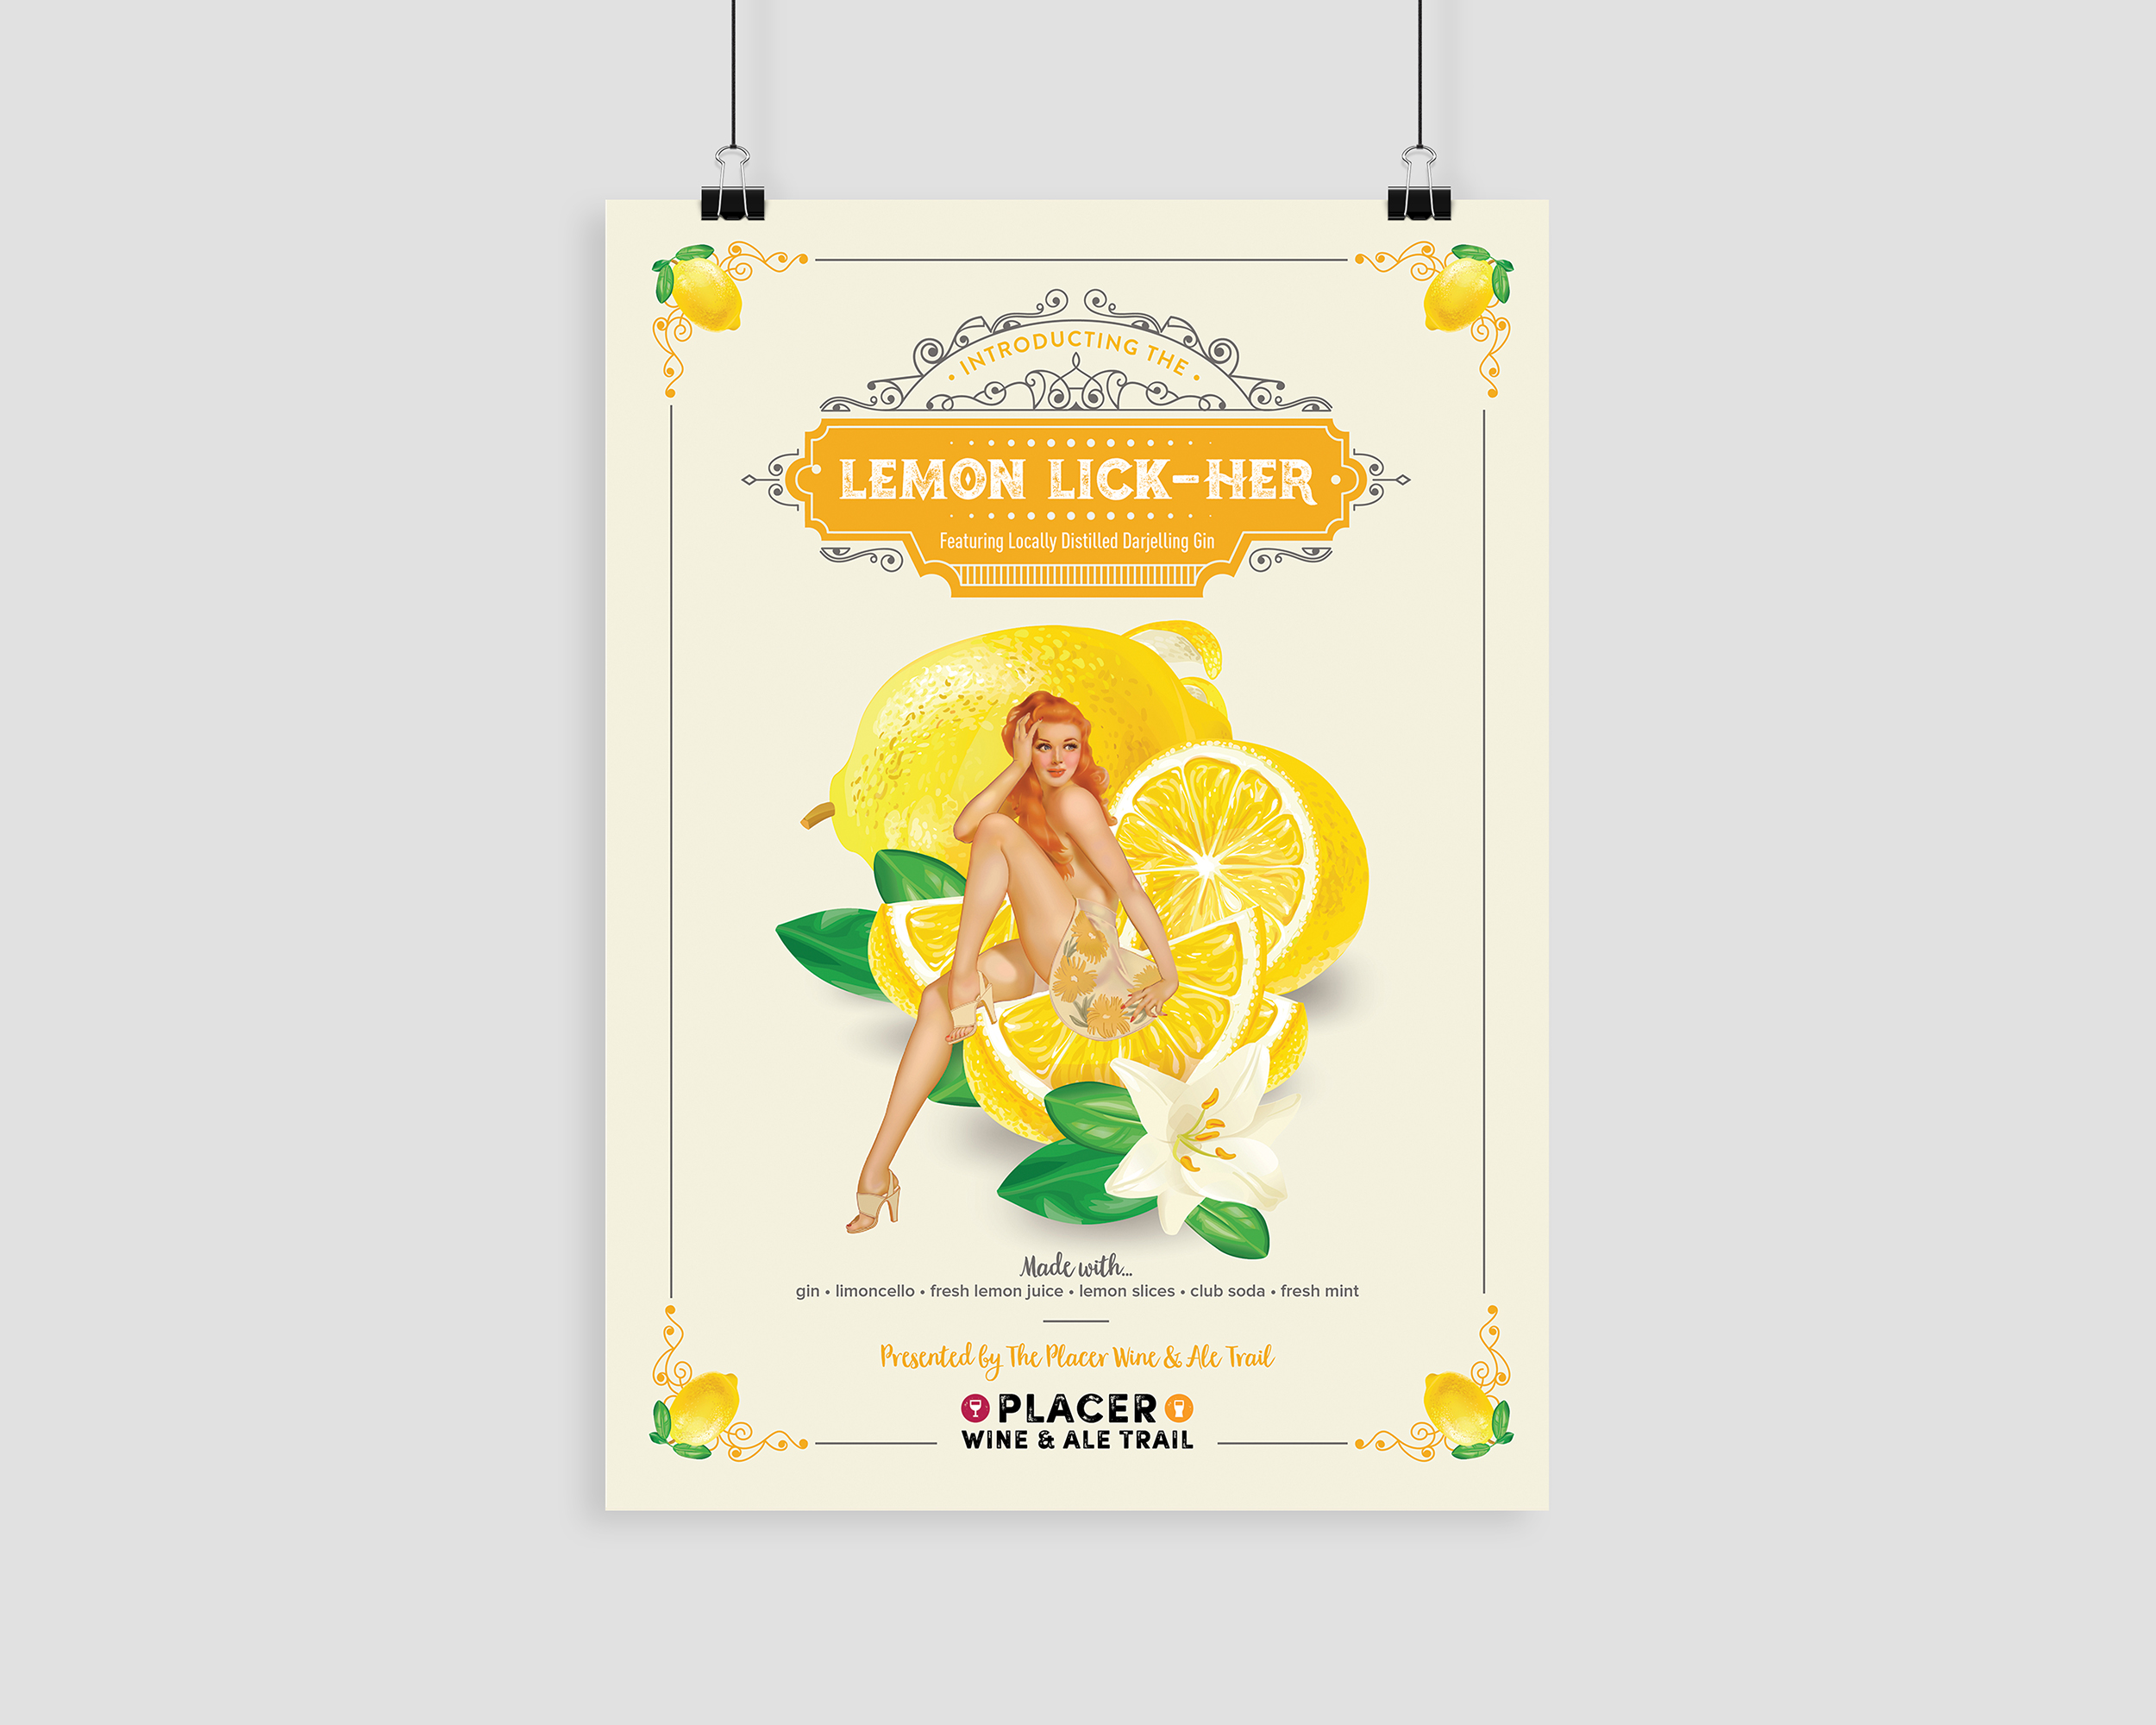 Lemon Lick-Her Poster for Placer Wine & Ale Trail